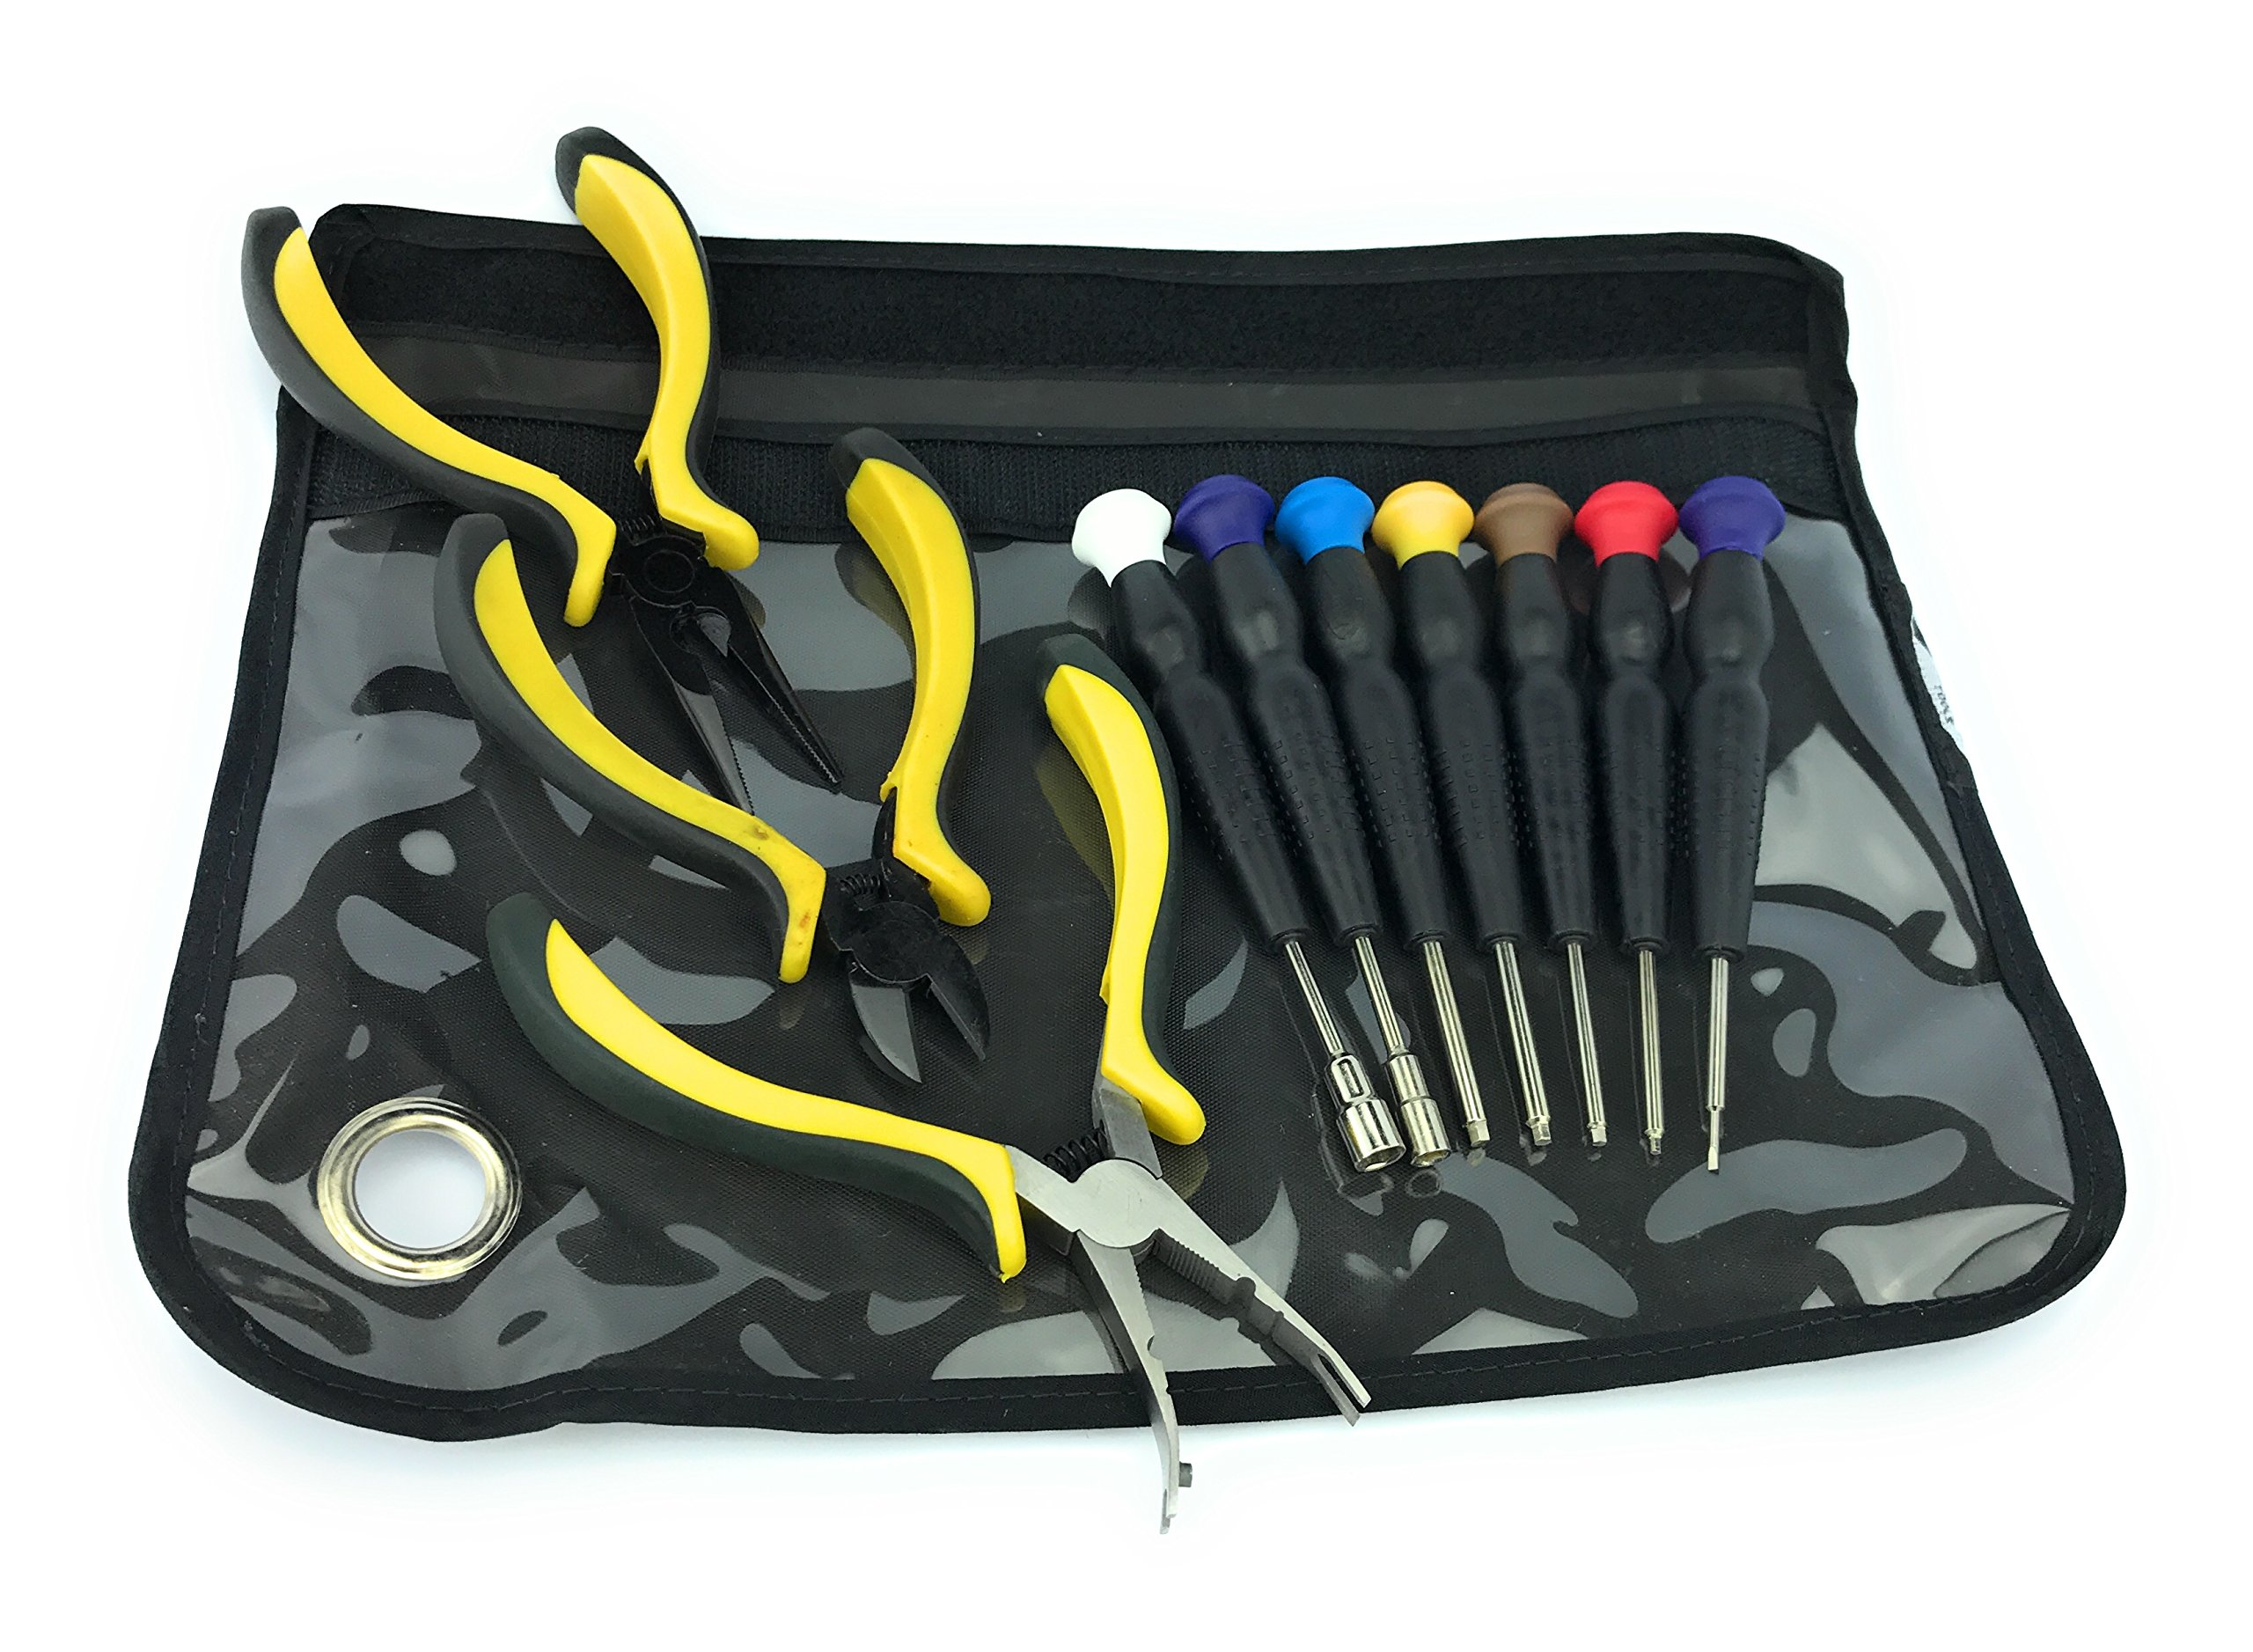 Silverhill Tools ATKRC3 Screwdrivers & Pliers Kit For Rc Heli, Car, Plane, Boat, Includes Hex Screwdrivers & Nut Setters. É